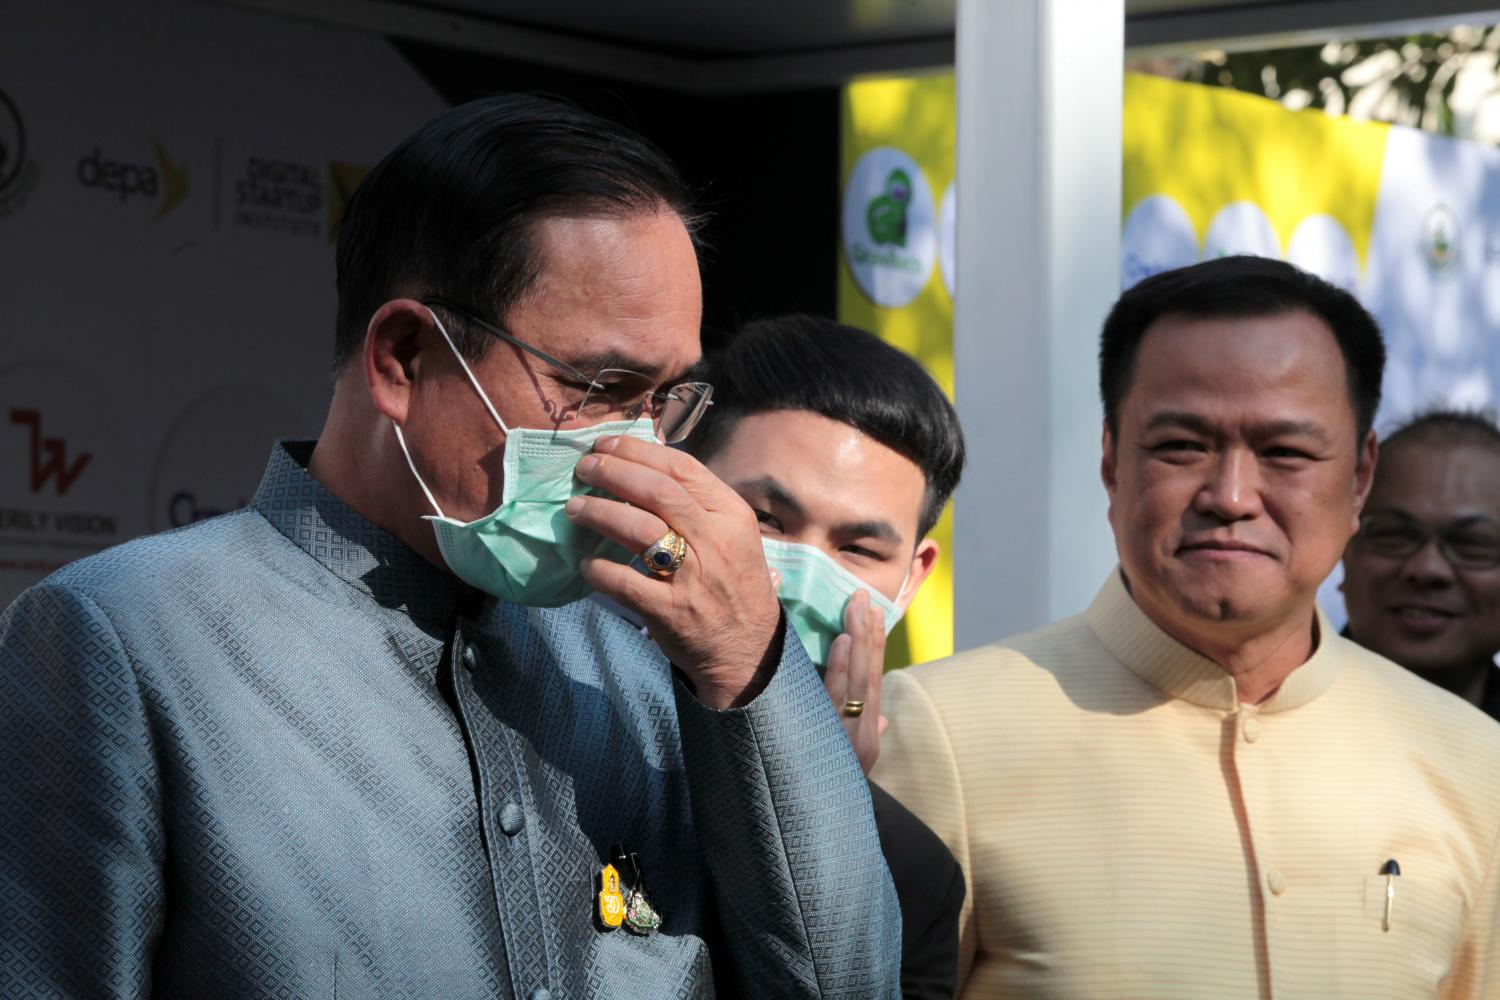 Prime Minister Prayut Chan-o-cha, left, demonstrates how to wear a face mask as a guard against the coronovirus and PM2.5 dust at Government House last week as Public Health Minister Anutin Charnvirakul, right, looks on.CHANAT KATANYU